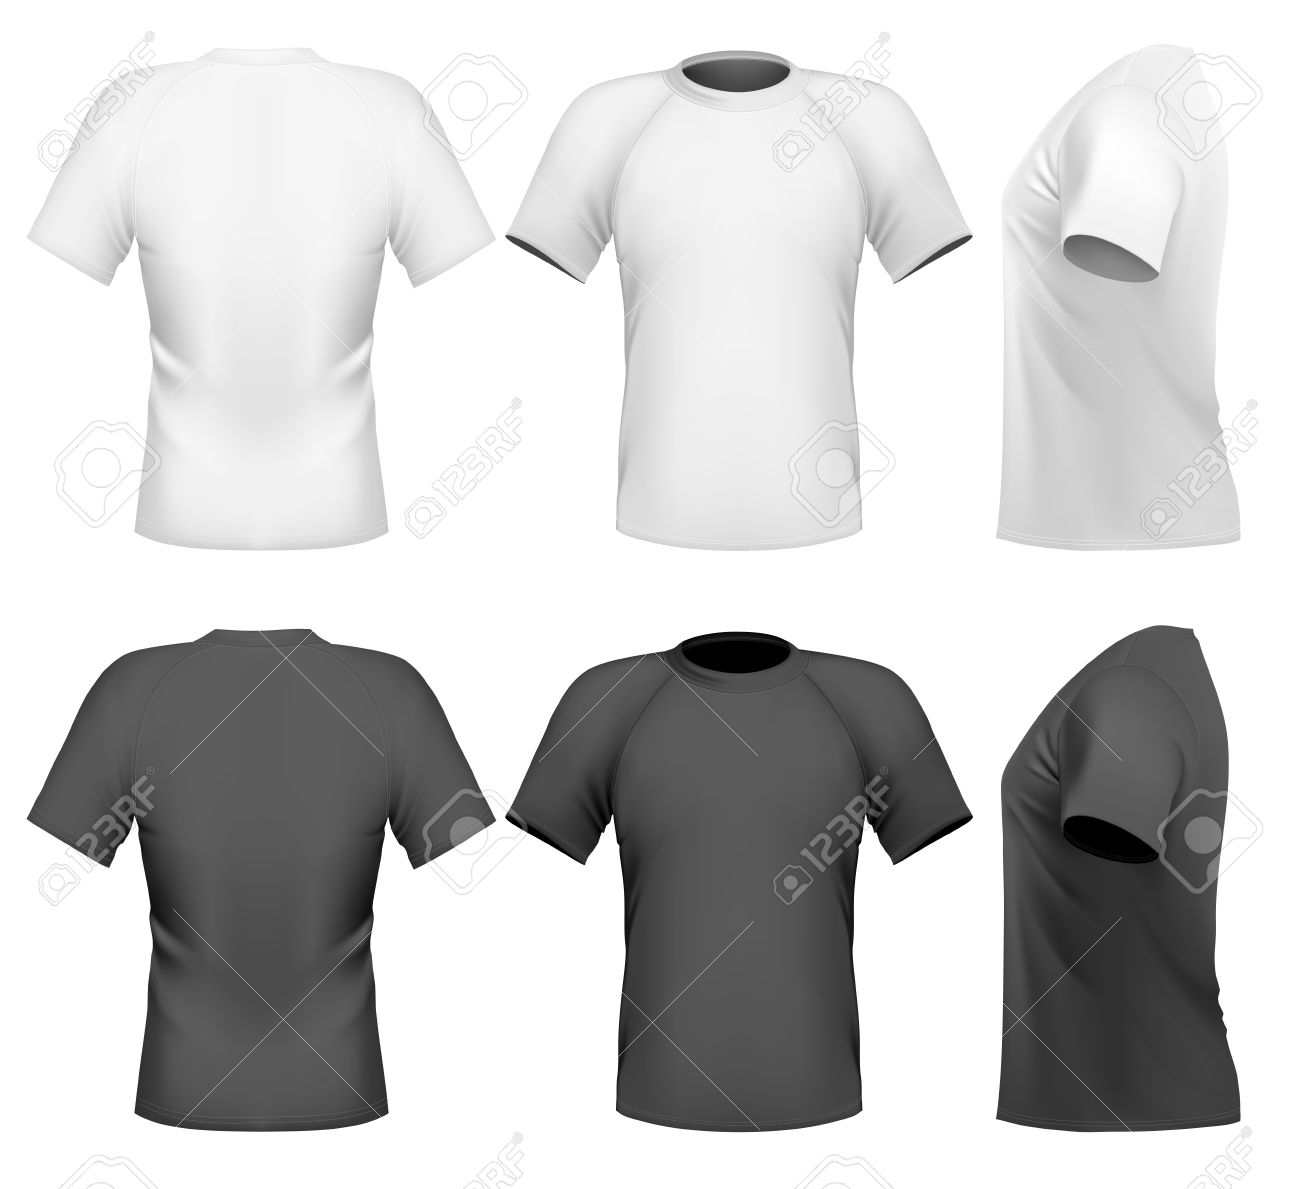 Black t shirt design template - Black T Shirt Front And Back Template Men S T Shirt Design Template Front Back And Download